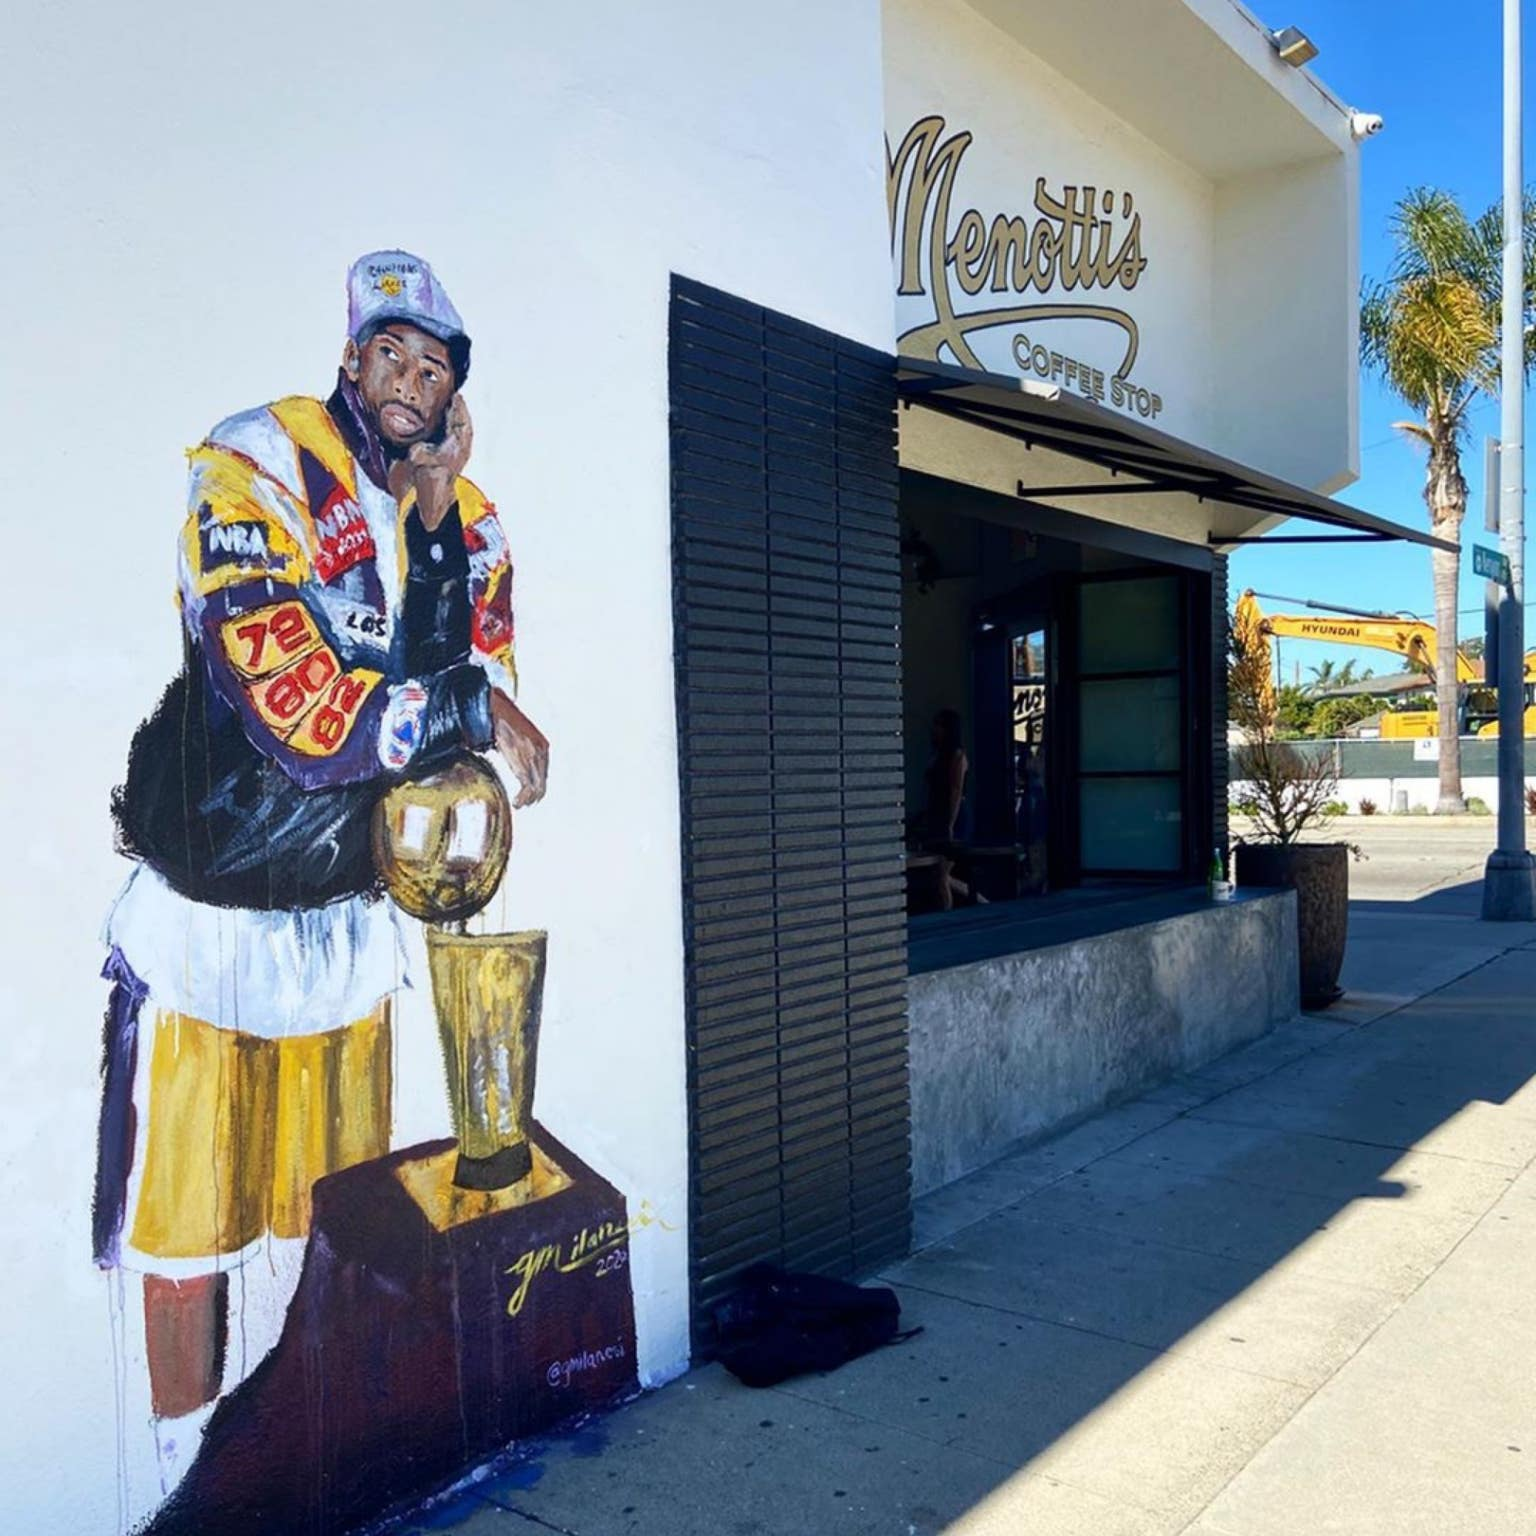 Kobe Bryant mural by Gena Milanesi at Menotti's Coffee Stop in Culver City